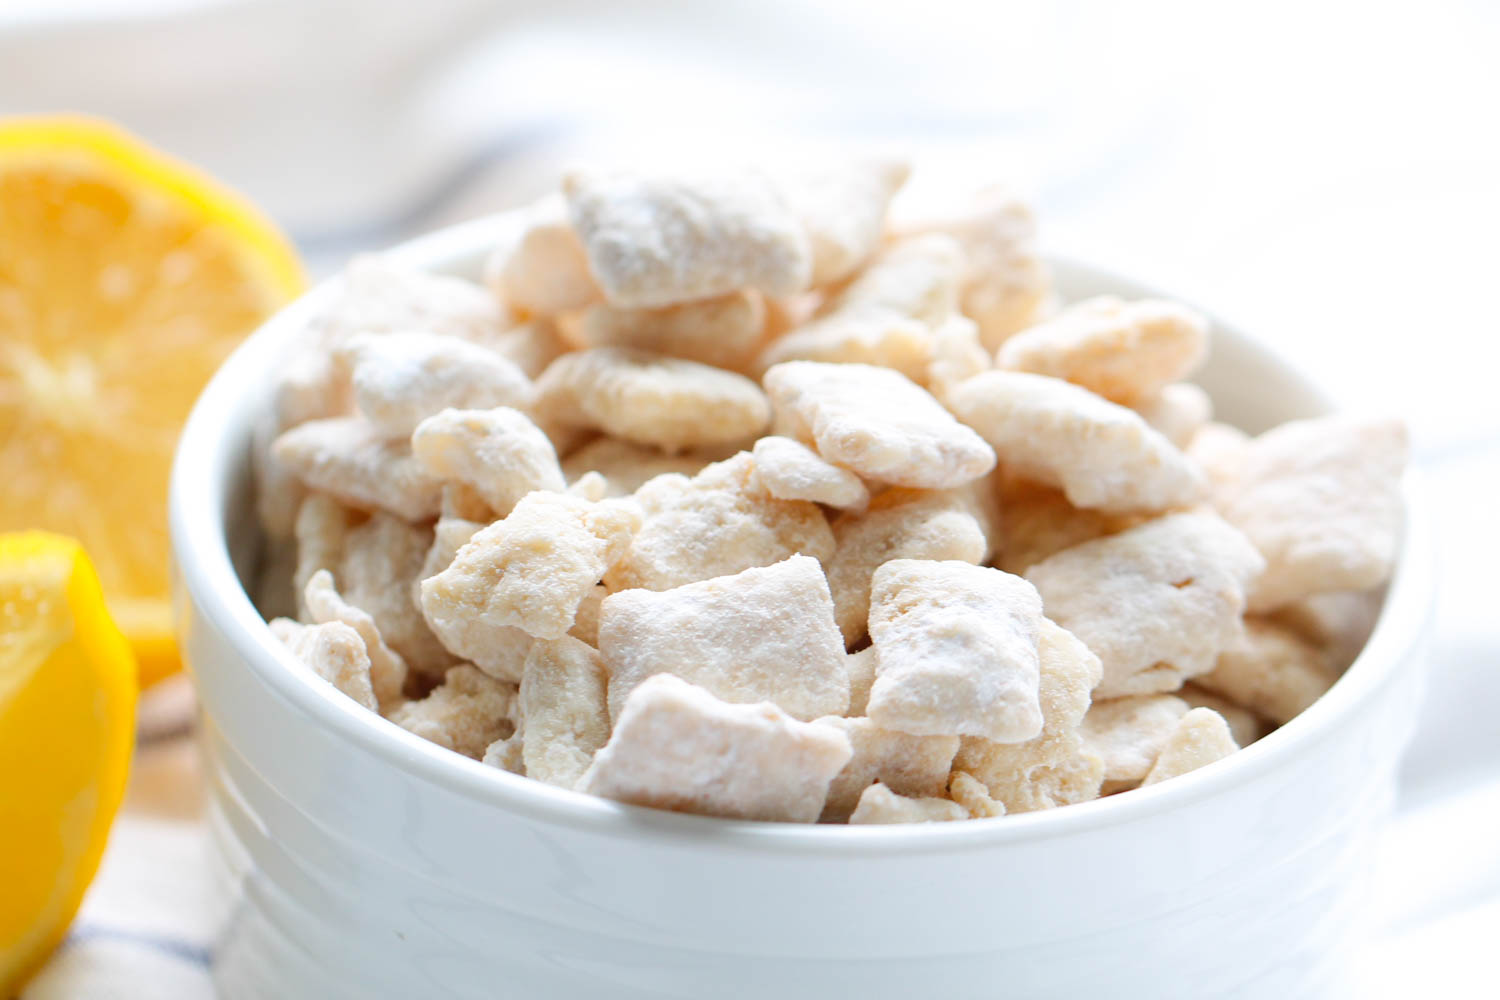 Lemon Chex Mix